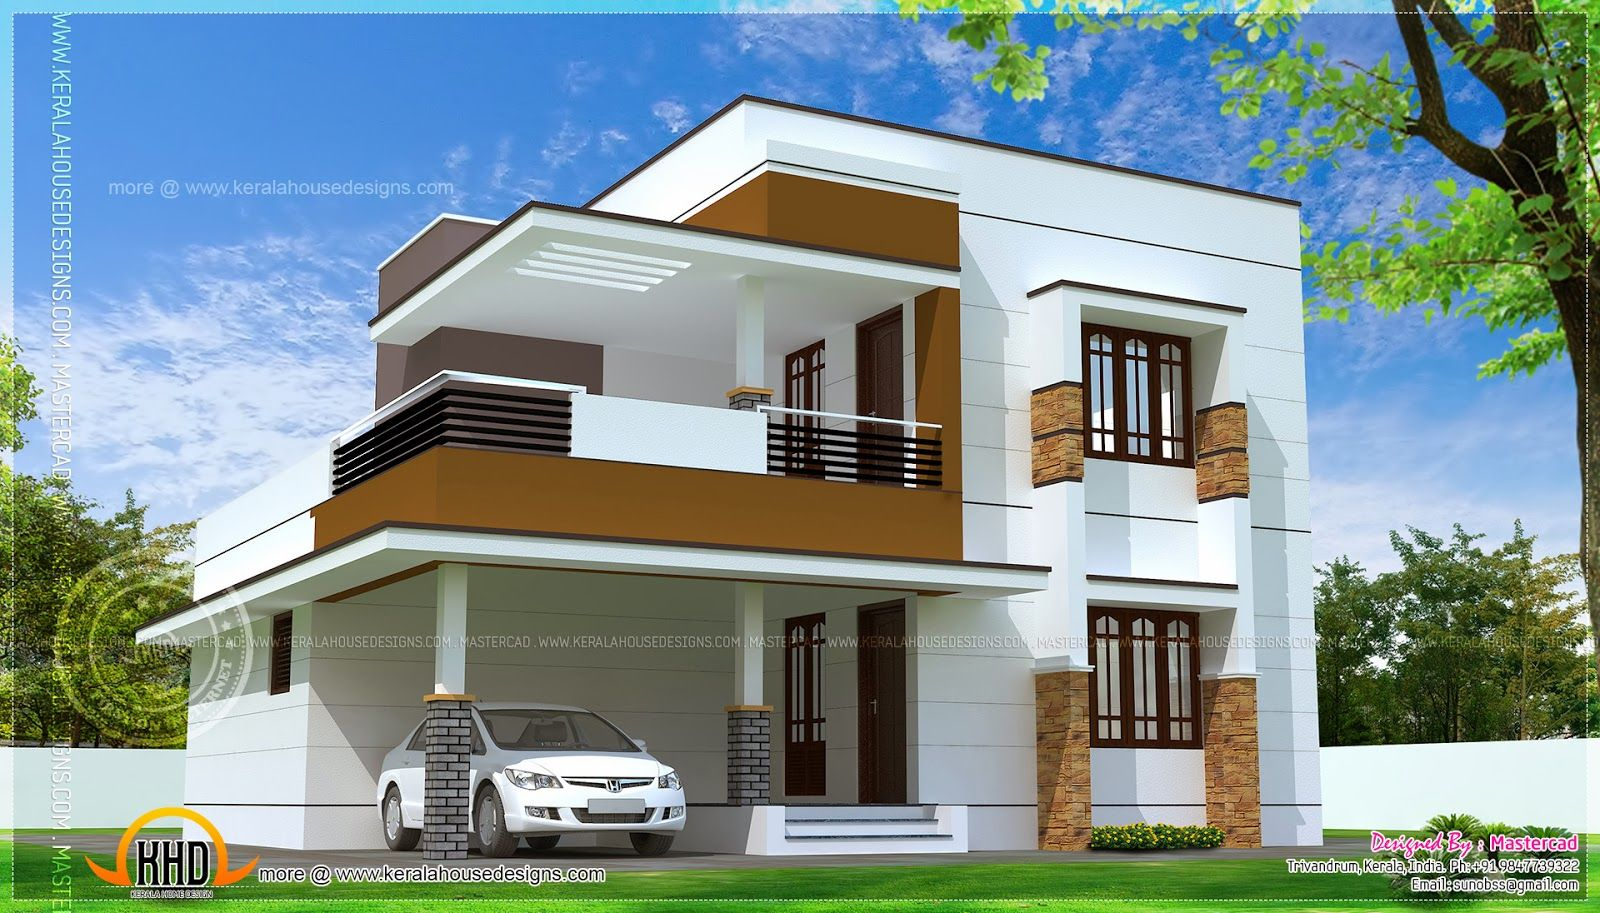 Home Design Photos modern house plans erven 500sq m | simple modern home design in